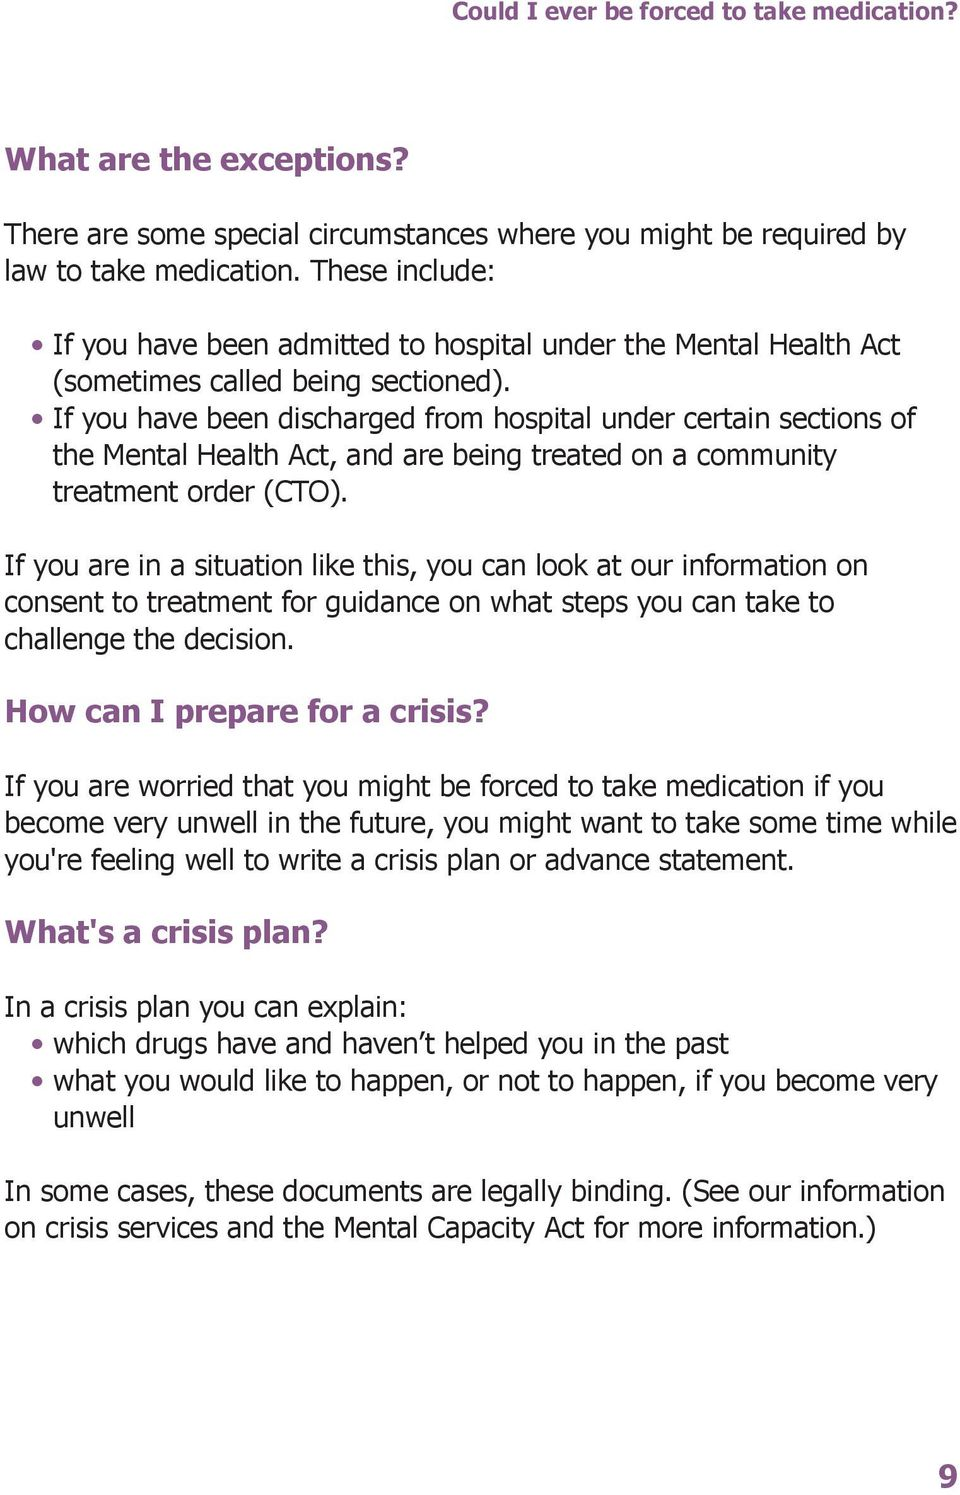 If you have been discharged from hospital under certain sections of the Mental Health Act, and are being treated on a community treatment order (CTO).